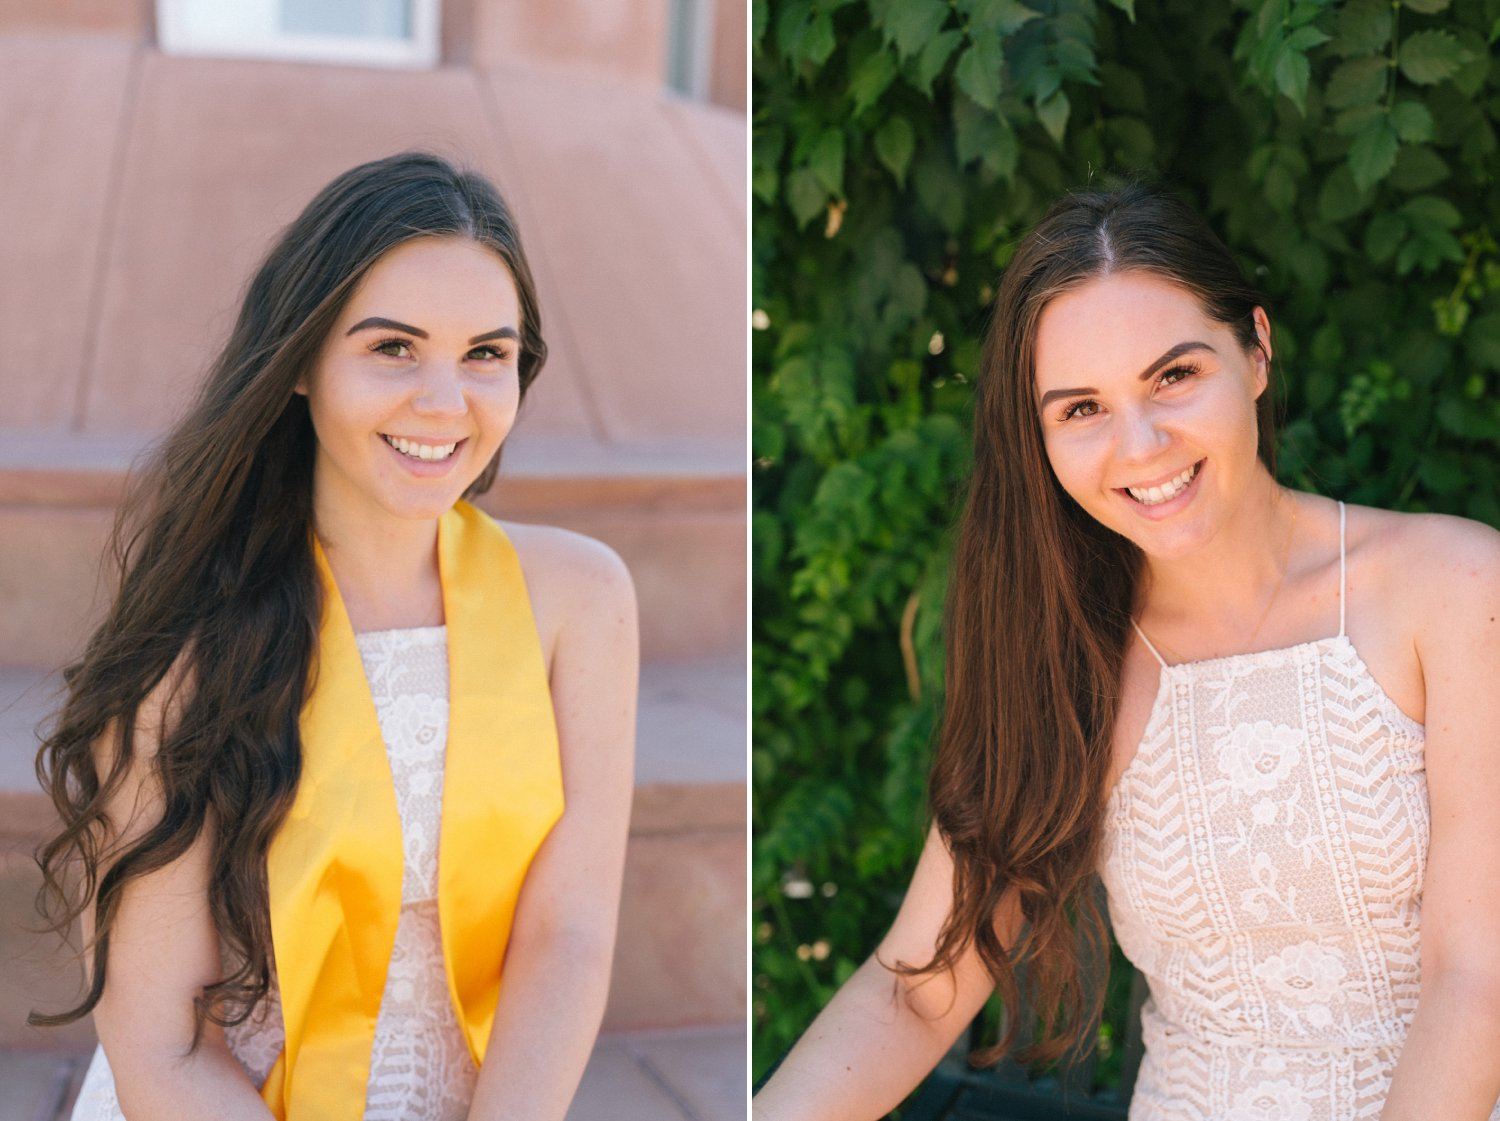 Phoenix college graduate photos